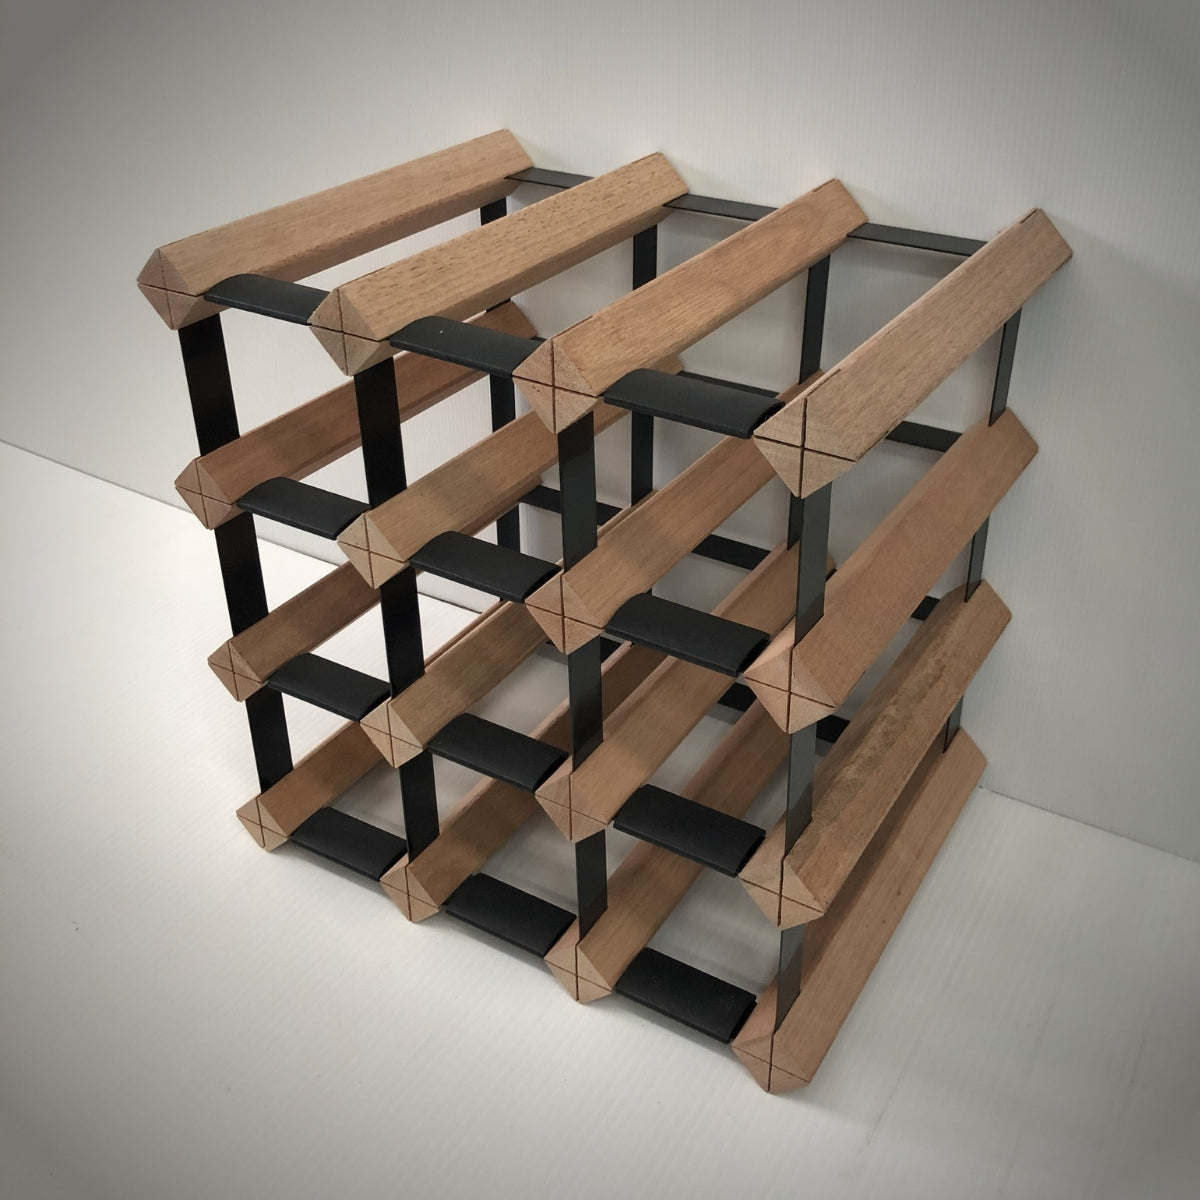 12 Bottle Timber Wine Rack | 3x3 Configuration